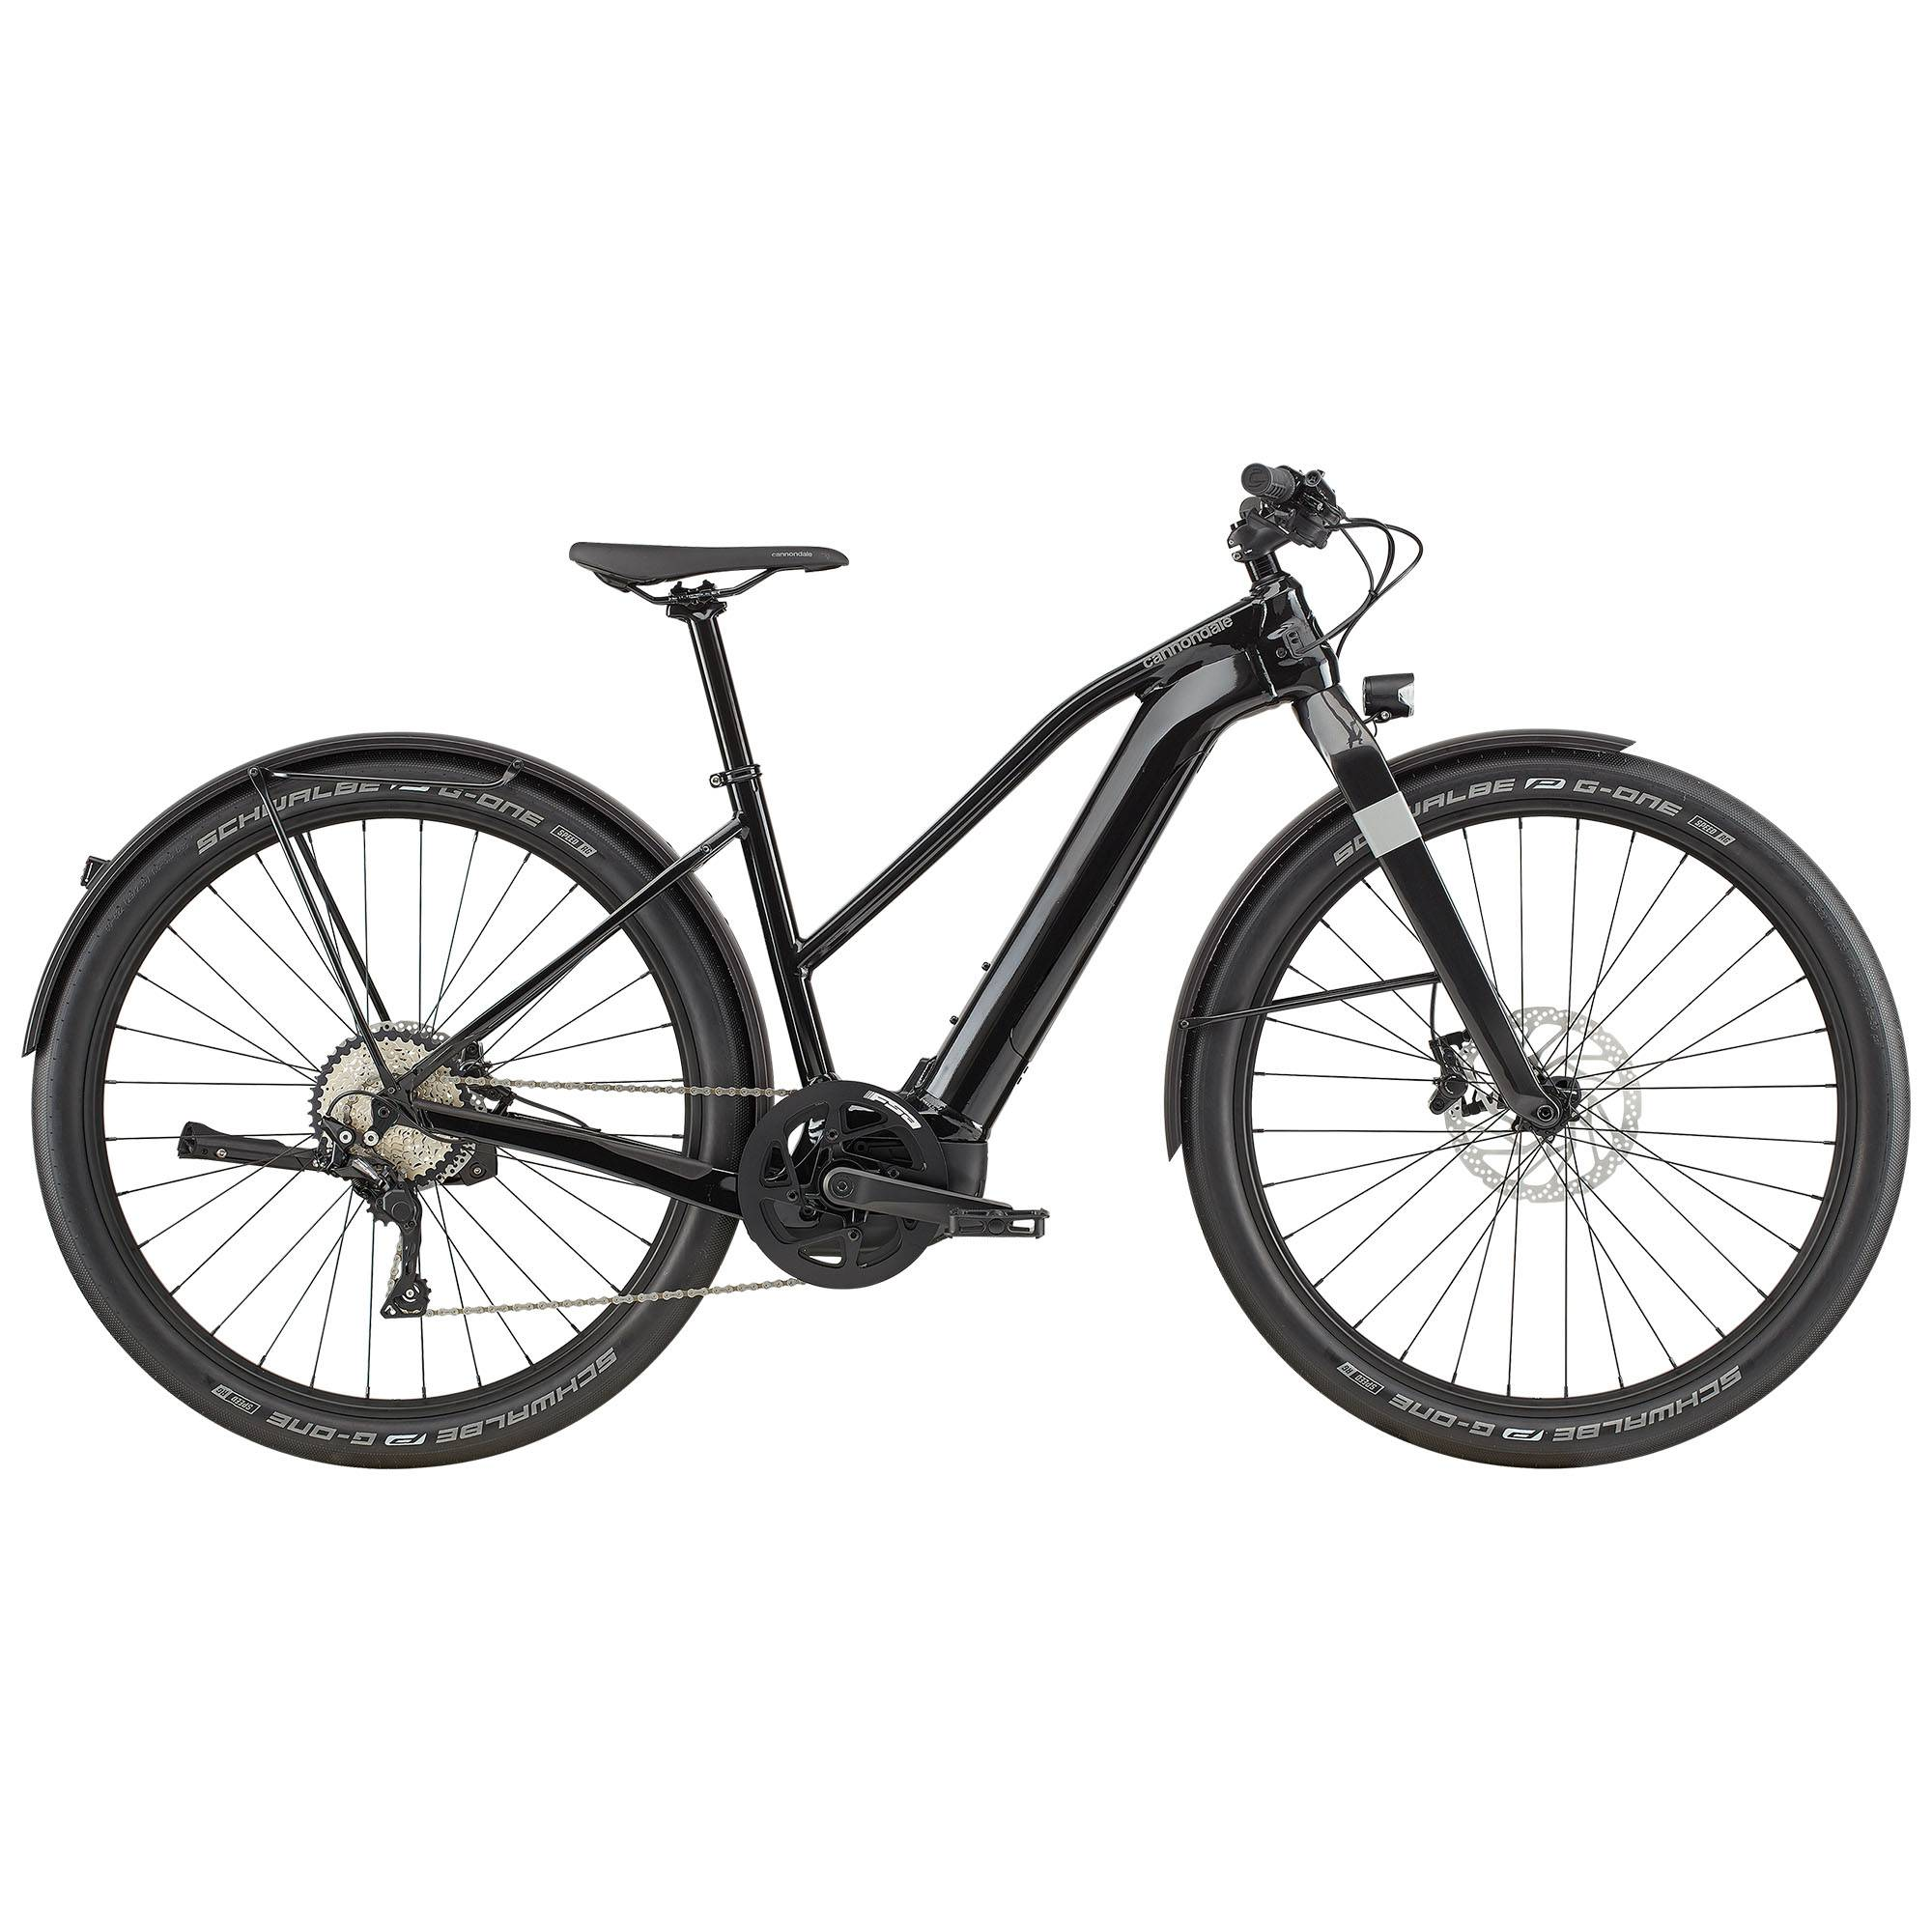 Cannondale Canvas Neo 1 Remixte Electric Bike '20  - Black - Size: Medium